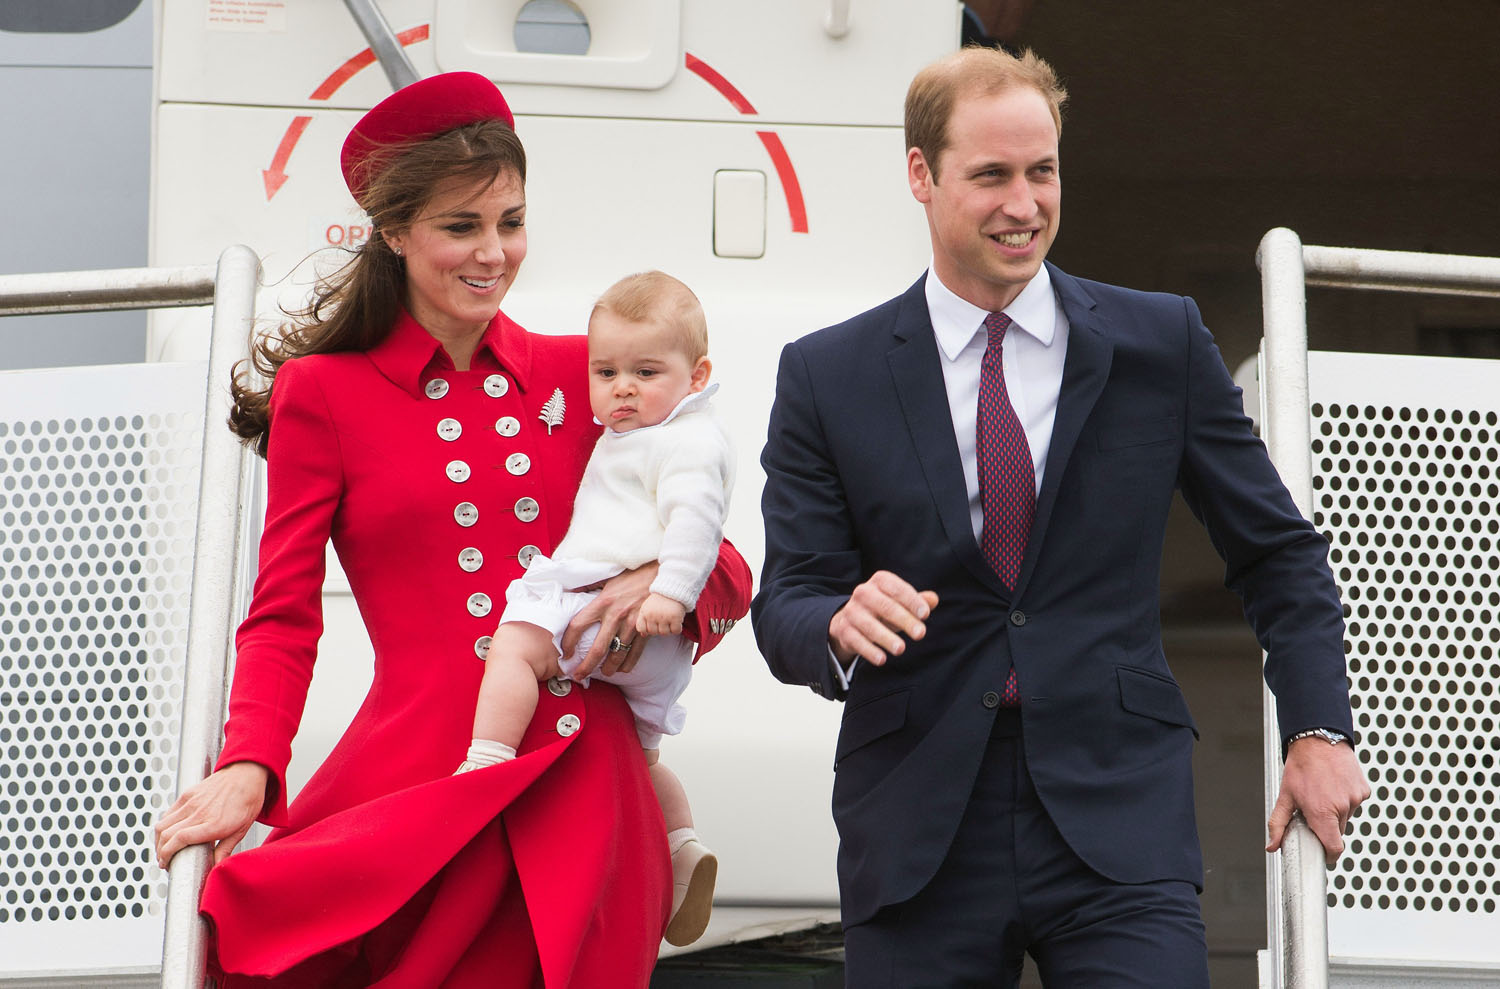 Prince William, Duke of Cambridge, Catherine, Duchess of Cambridge and Prince George of Cambridge arrive at Wellington Airport's military terminal for the start of their tour on April 7, 2014 in Wellington, New Zealand.